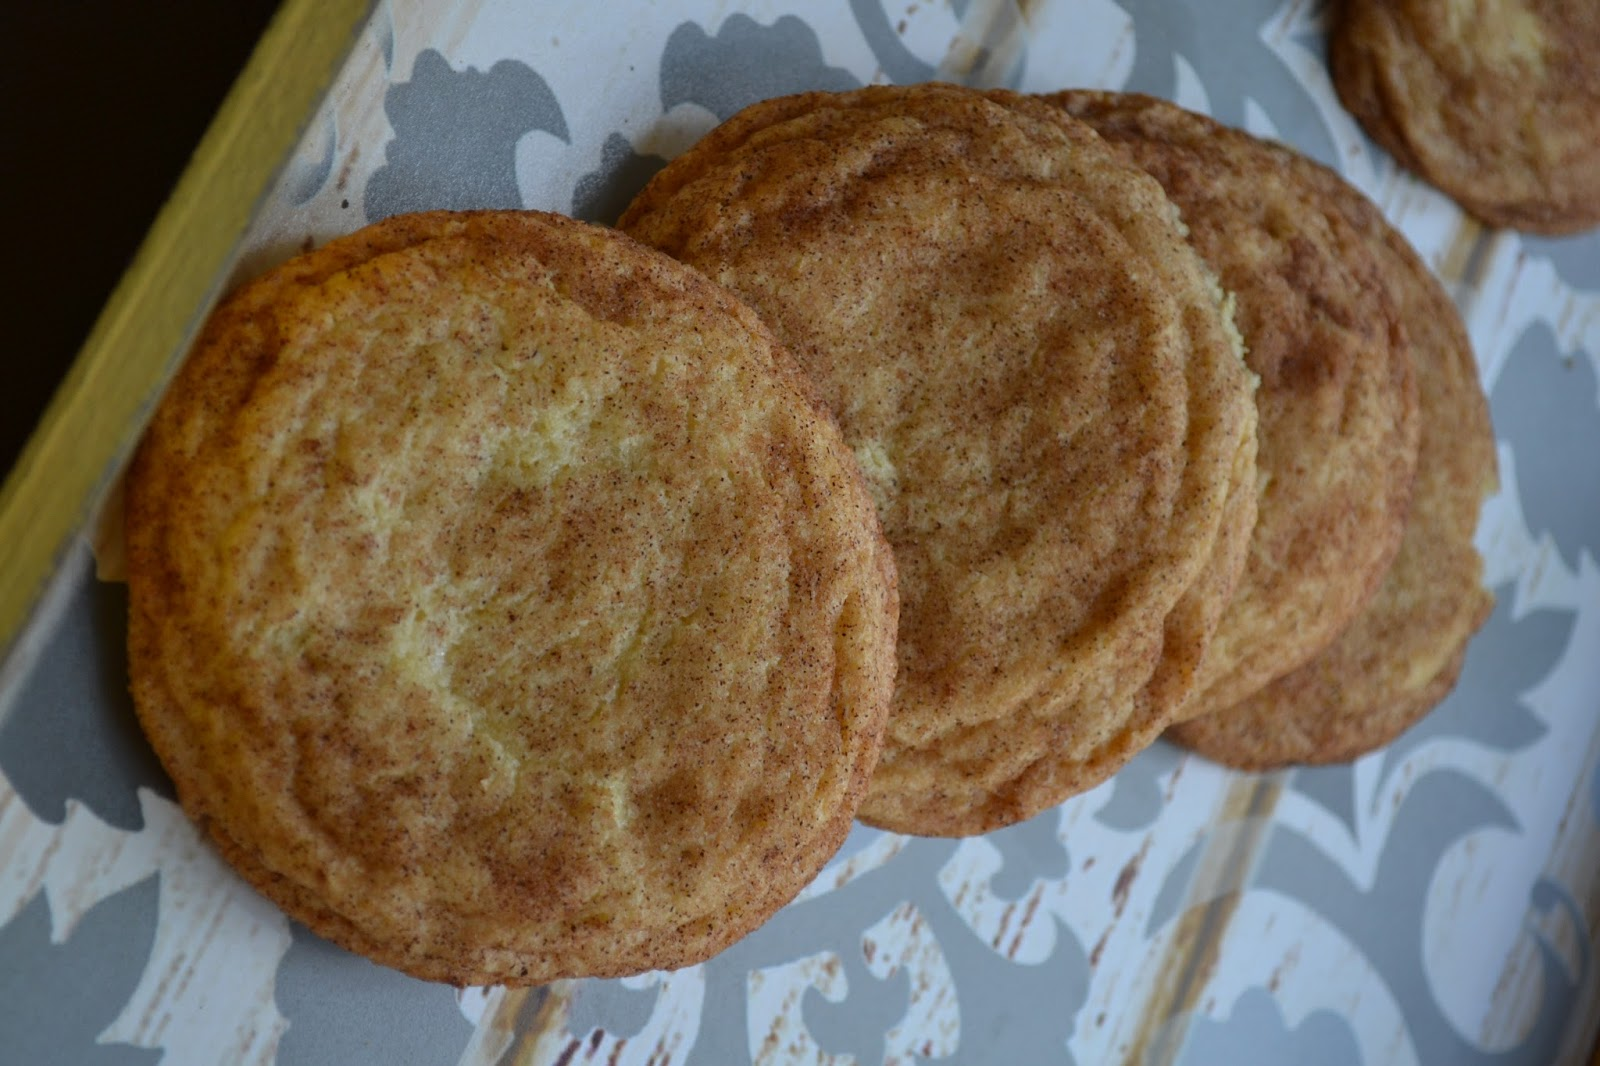 Making Miracles: Mrs. Sigg's Snickerdoodles